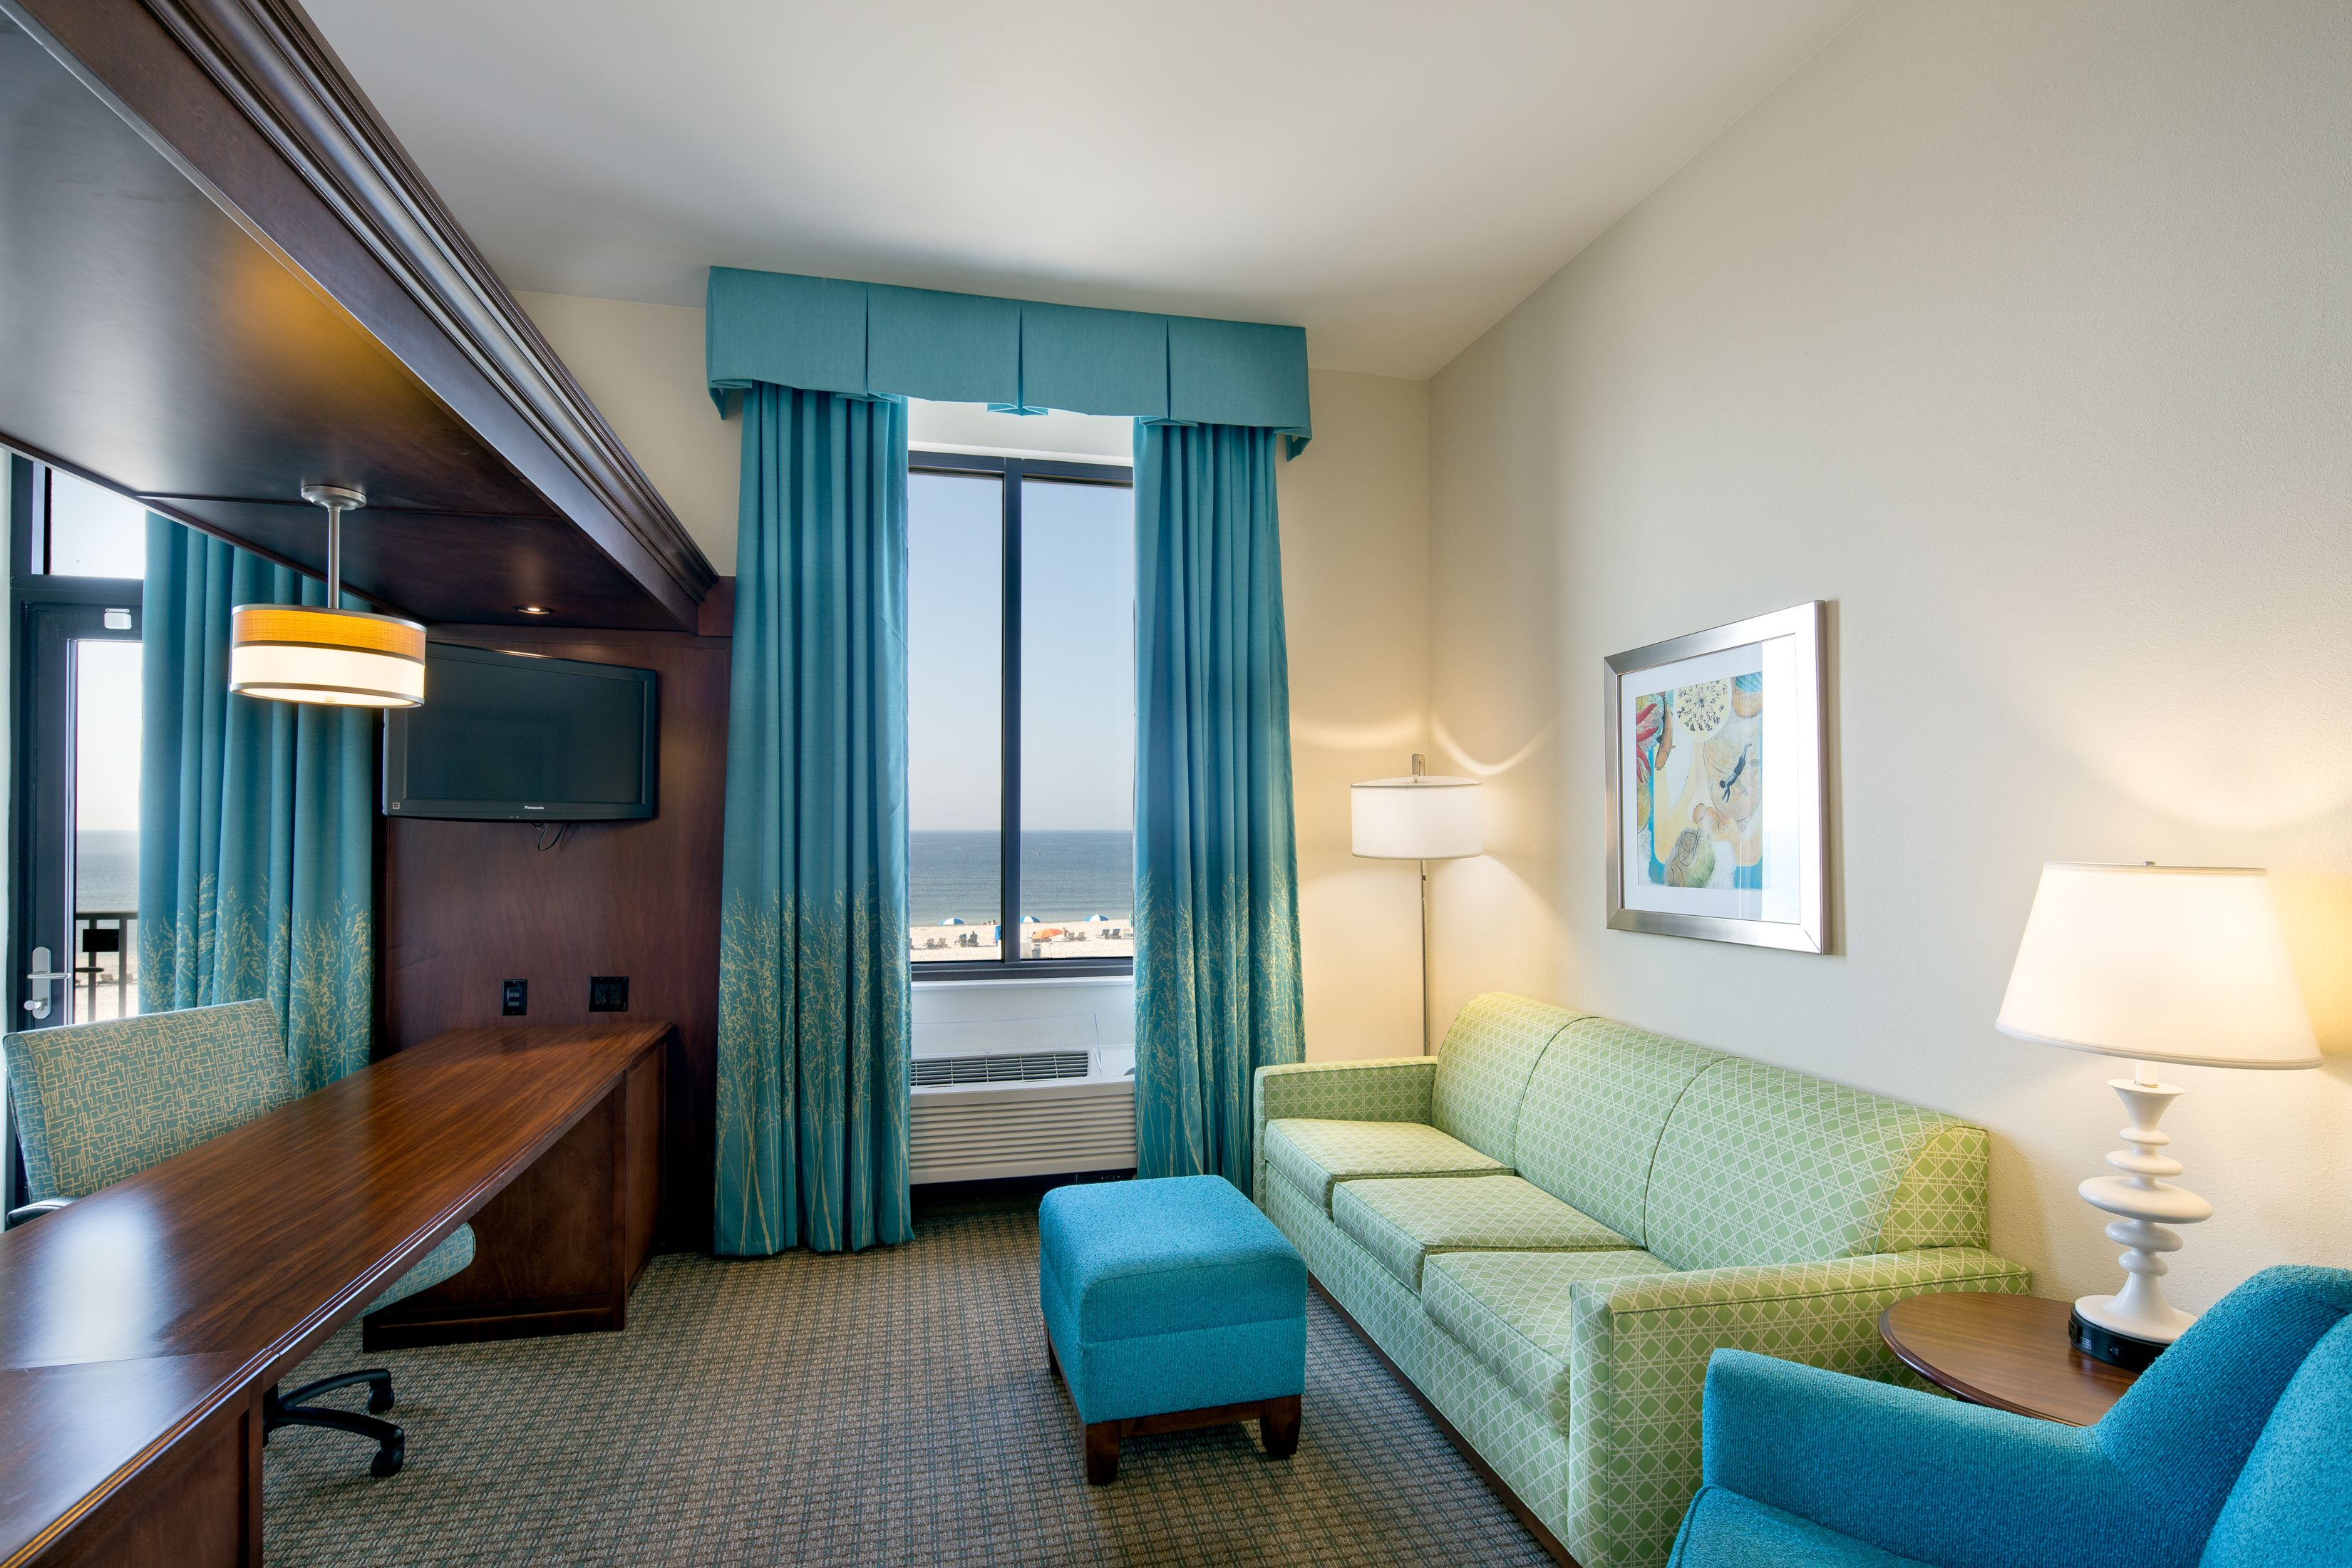 Hampton Inn Suites Beachfront Hotel Located In Orange Beach Gulf Ss Alabama